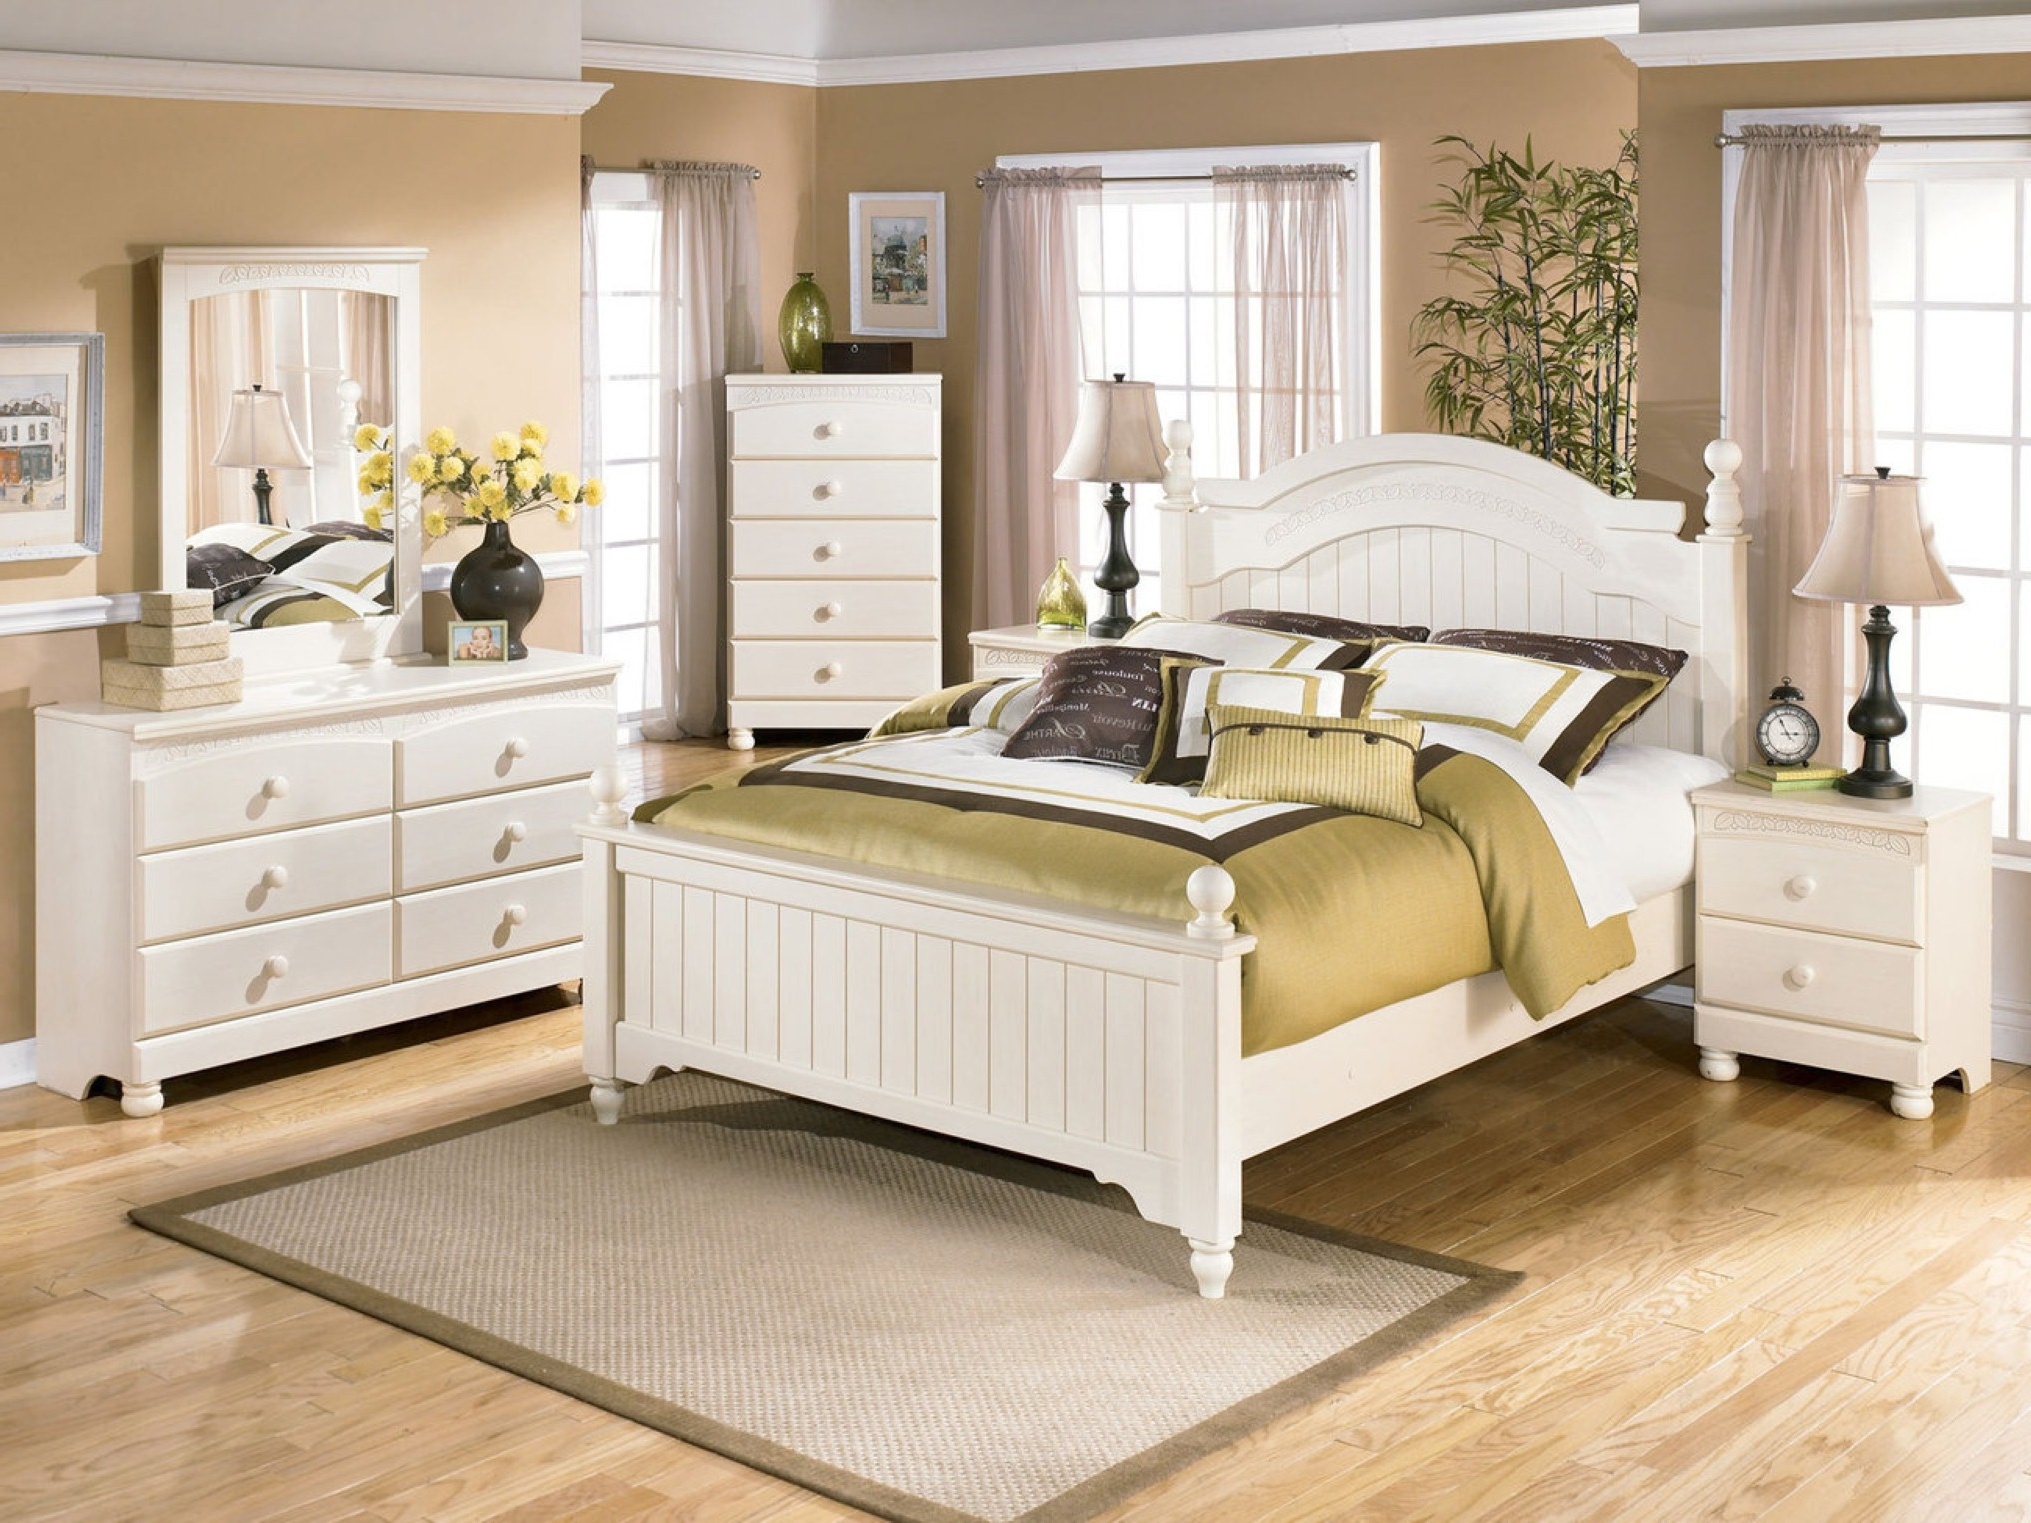 Neat Inspirational Cream Furniture As Fitted Bedroom Furniture To The Inspiration Design Ideas With The Best Examples Of The Bedroom (Image 10 of 21)